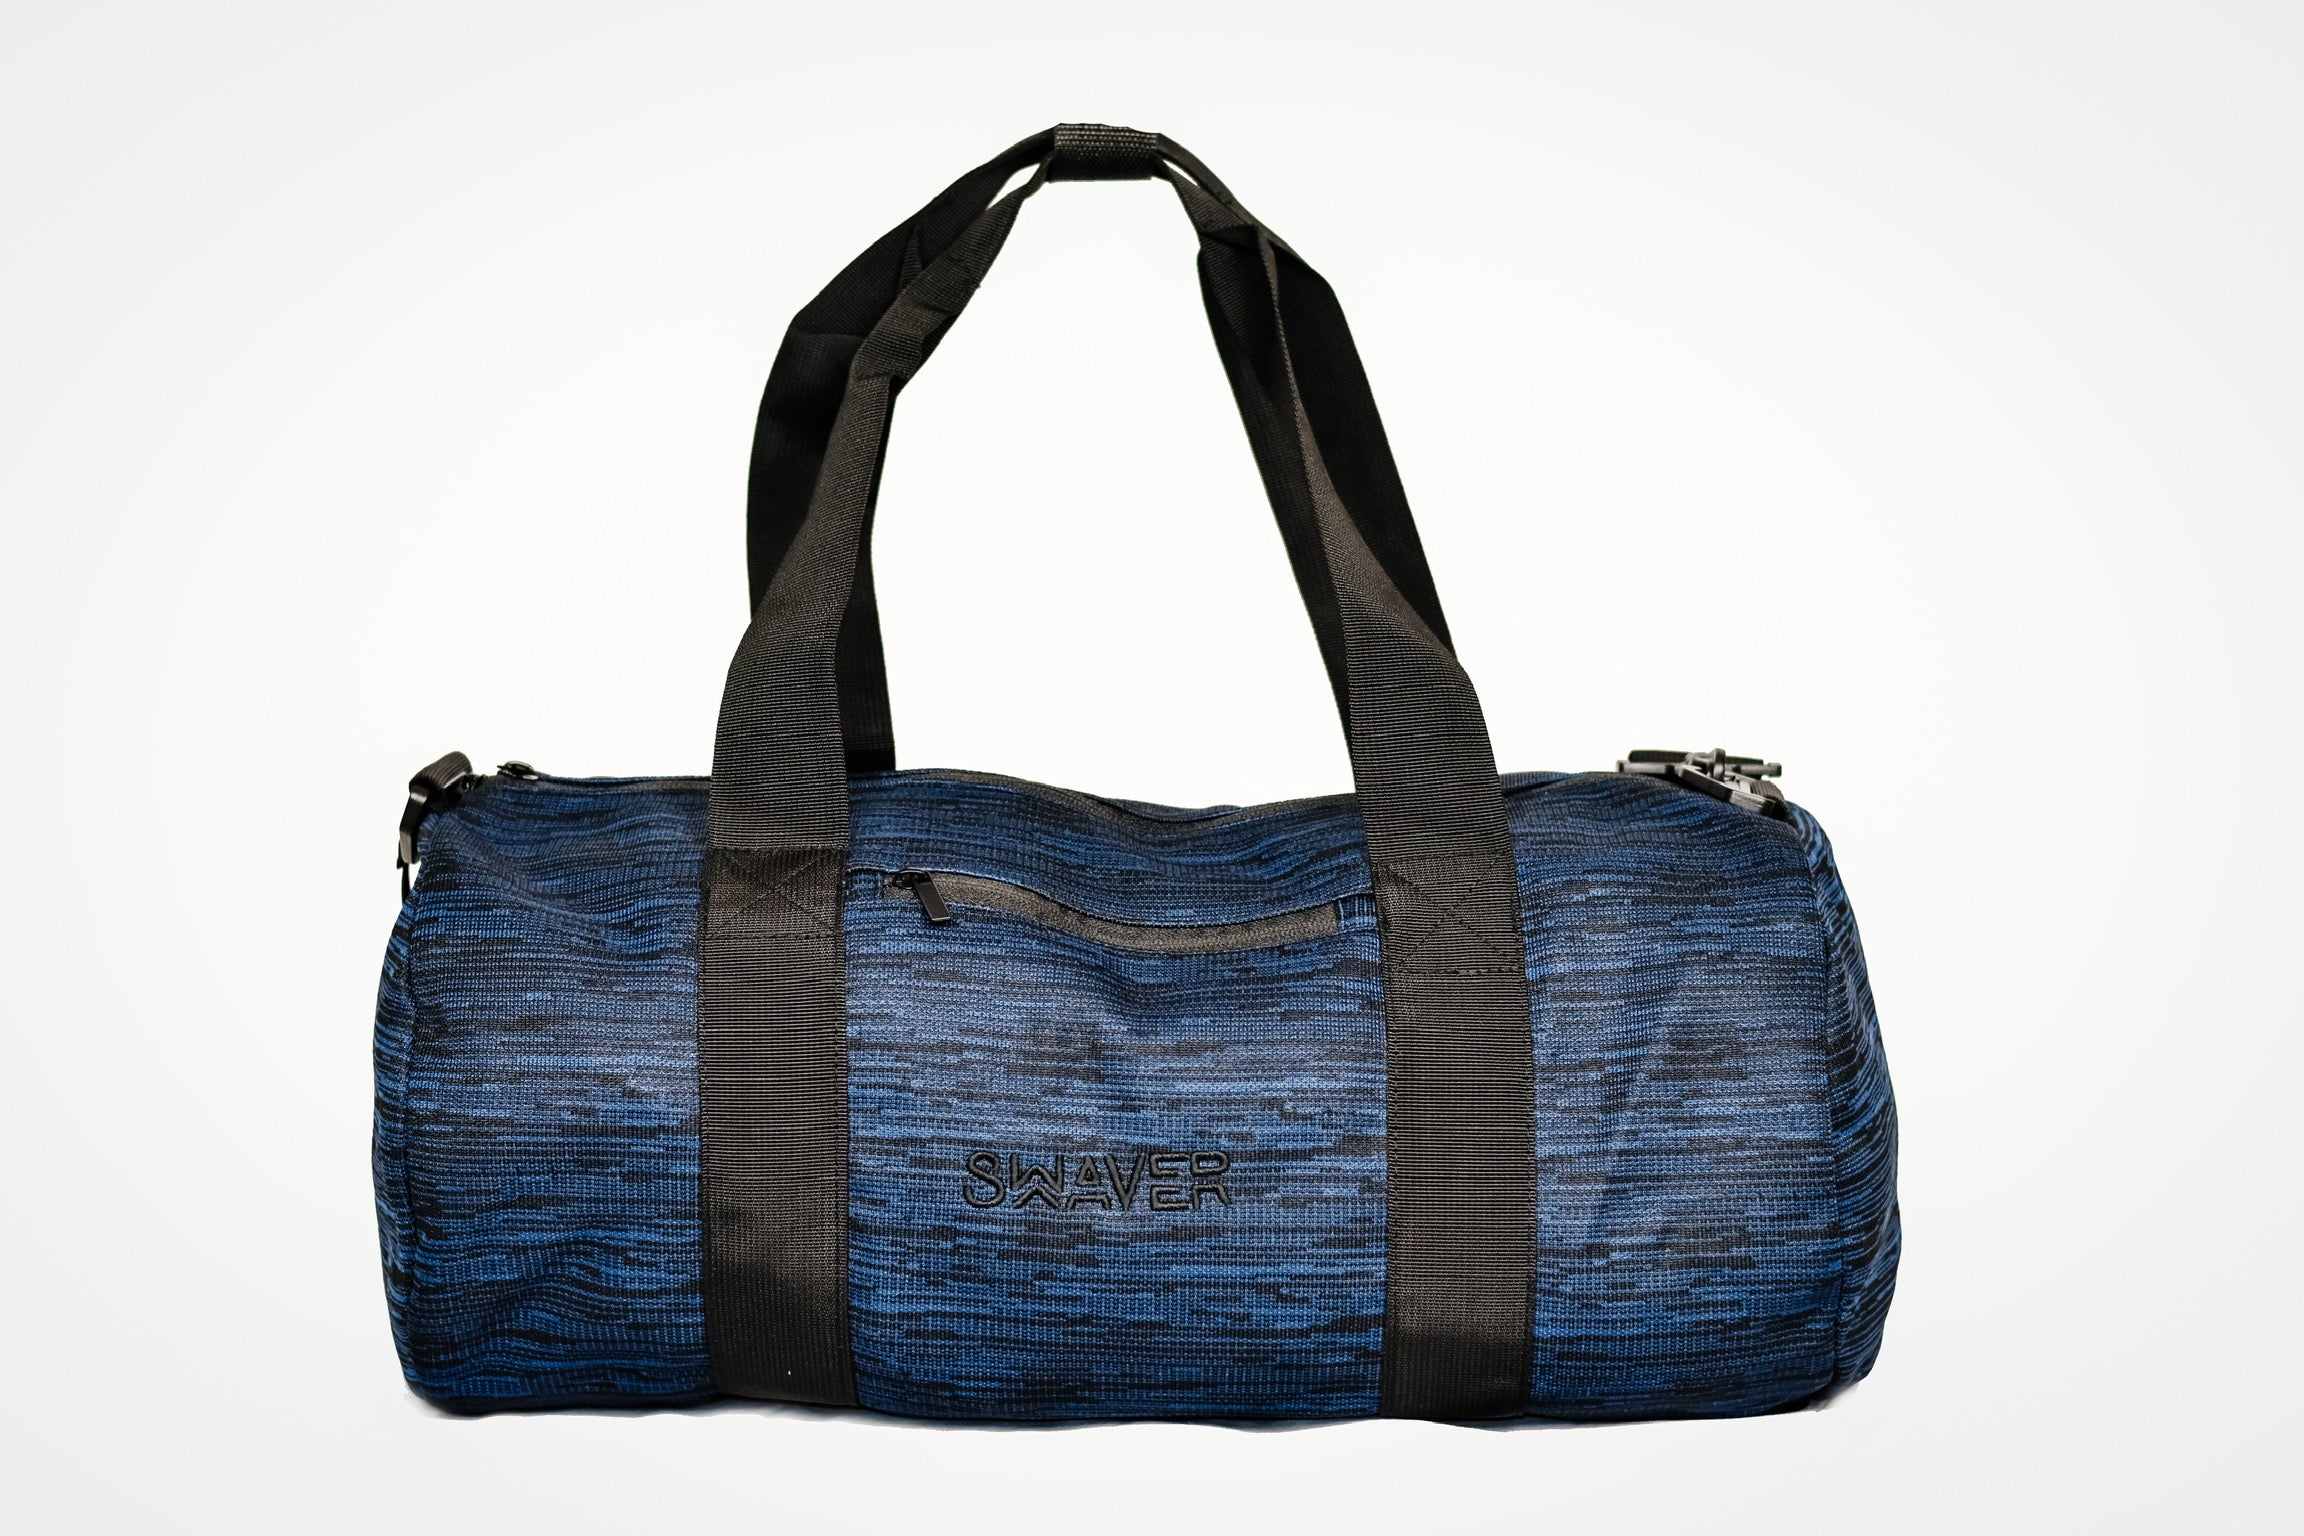 Swaver Knitted Navy/Blue & Black Barrel Bag - Swaver Accessories